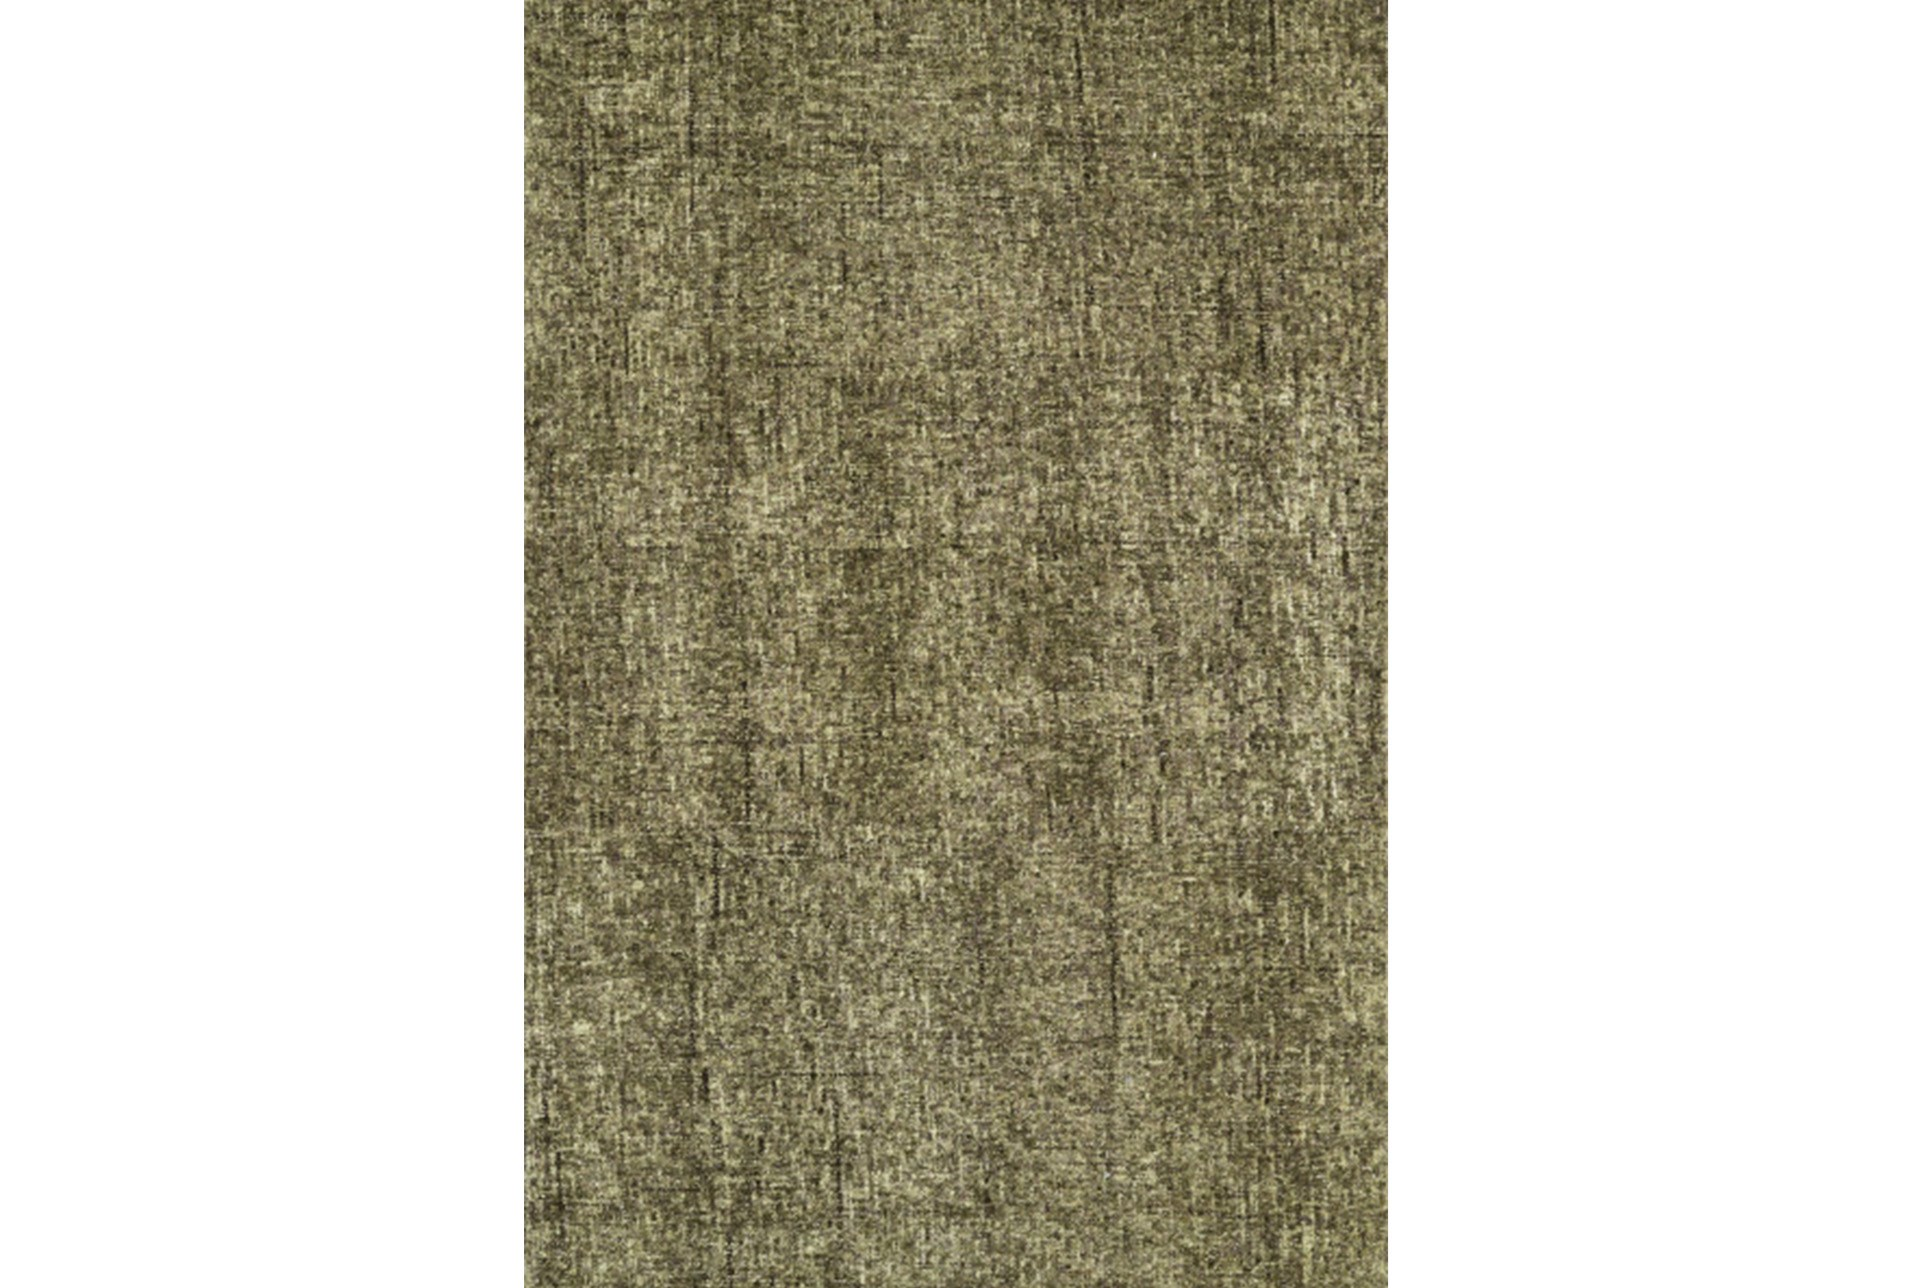 42x66 Rug Veracruz Basil Living Spaces Top Rust Qty 1 Has Been Successfully Added To Your Cart